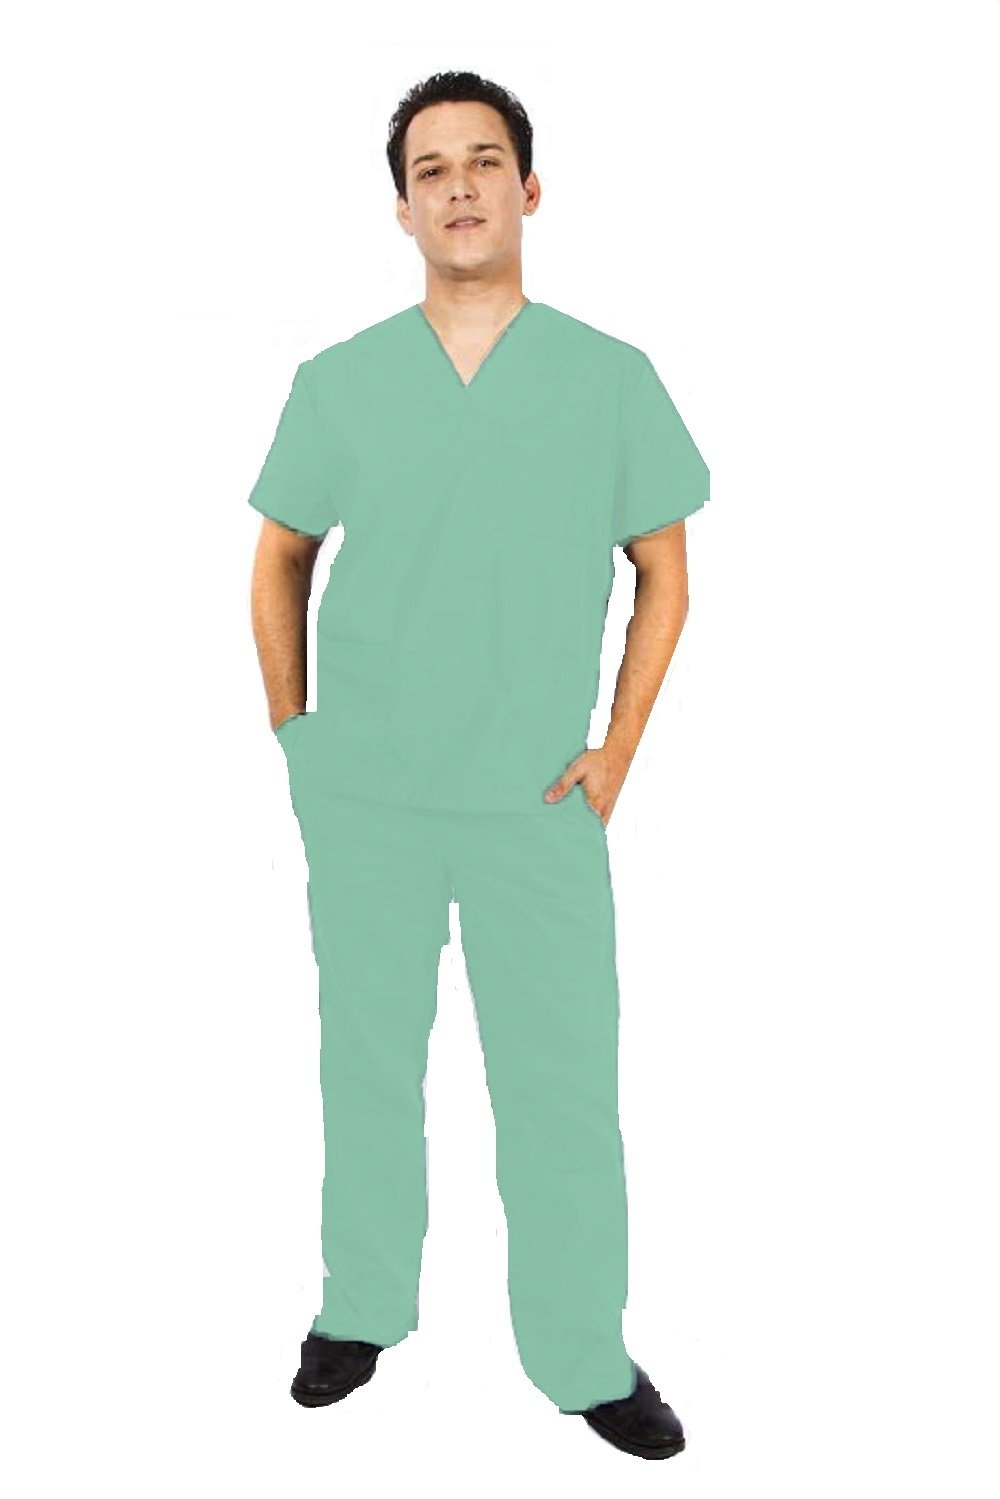 1e2c583d91a Galleon - M&M SCRUBS Men Scrub Set Medical Scrub Top And Pants XXS Surgical  Green